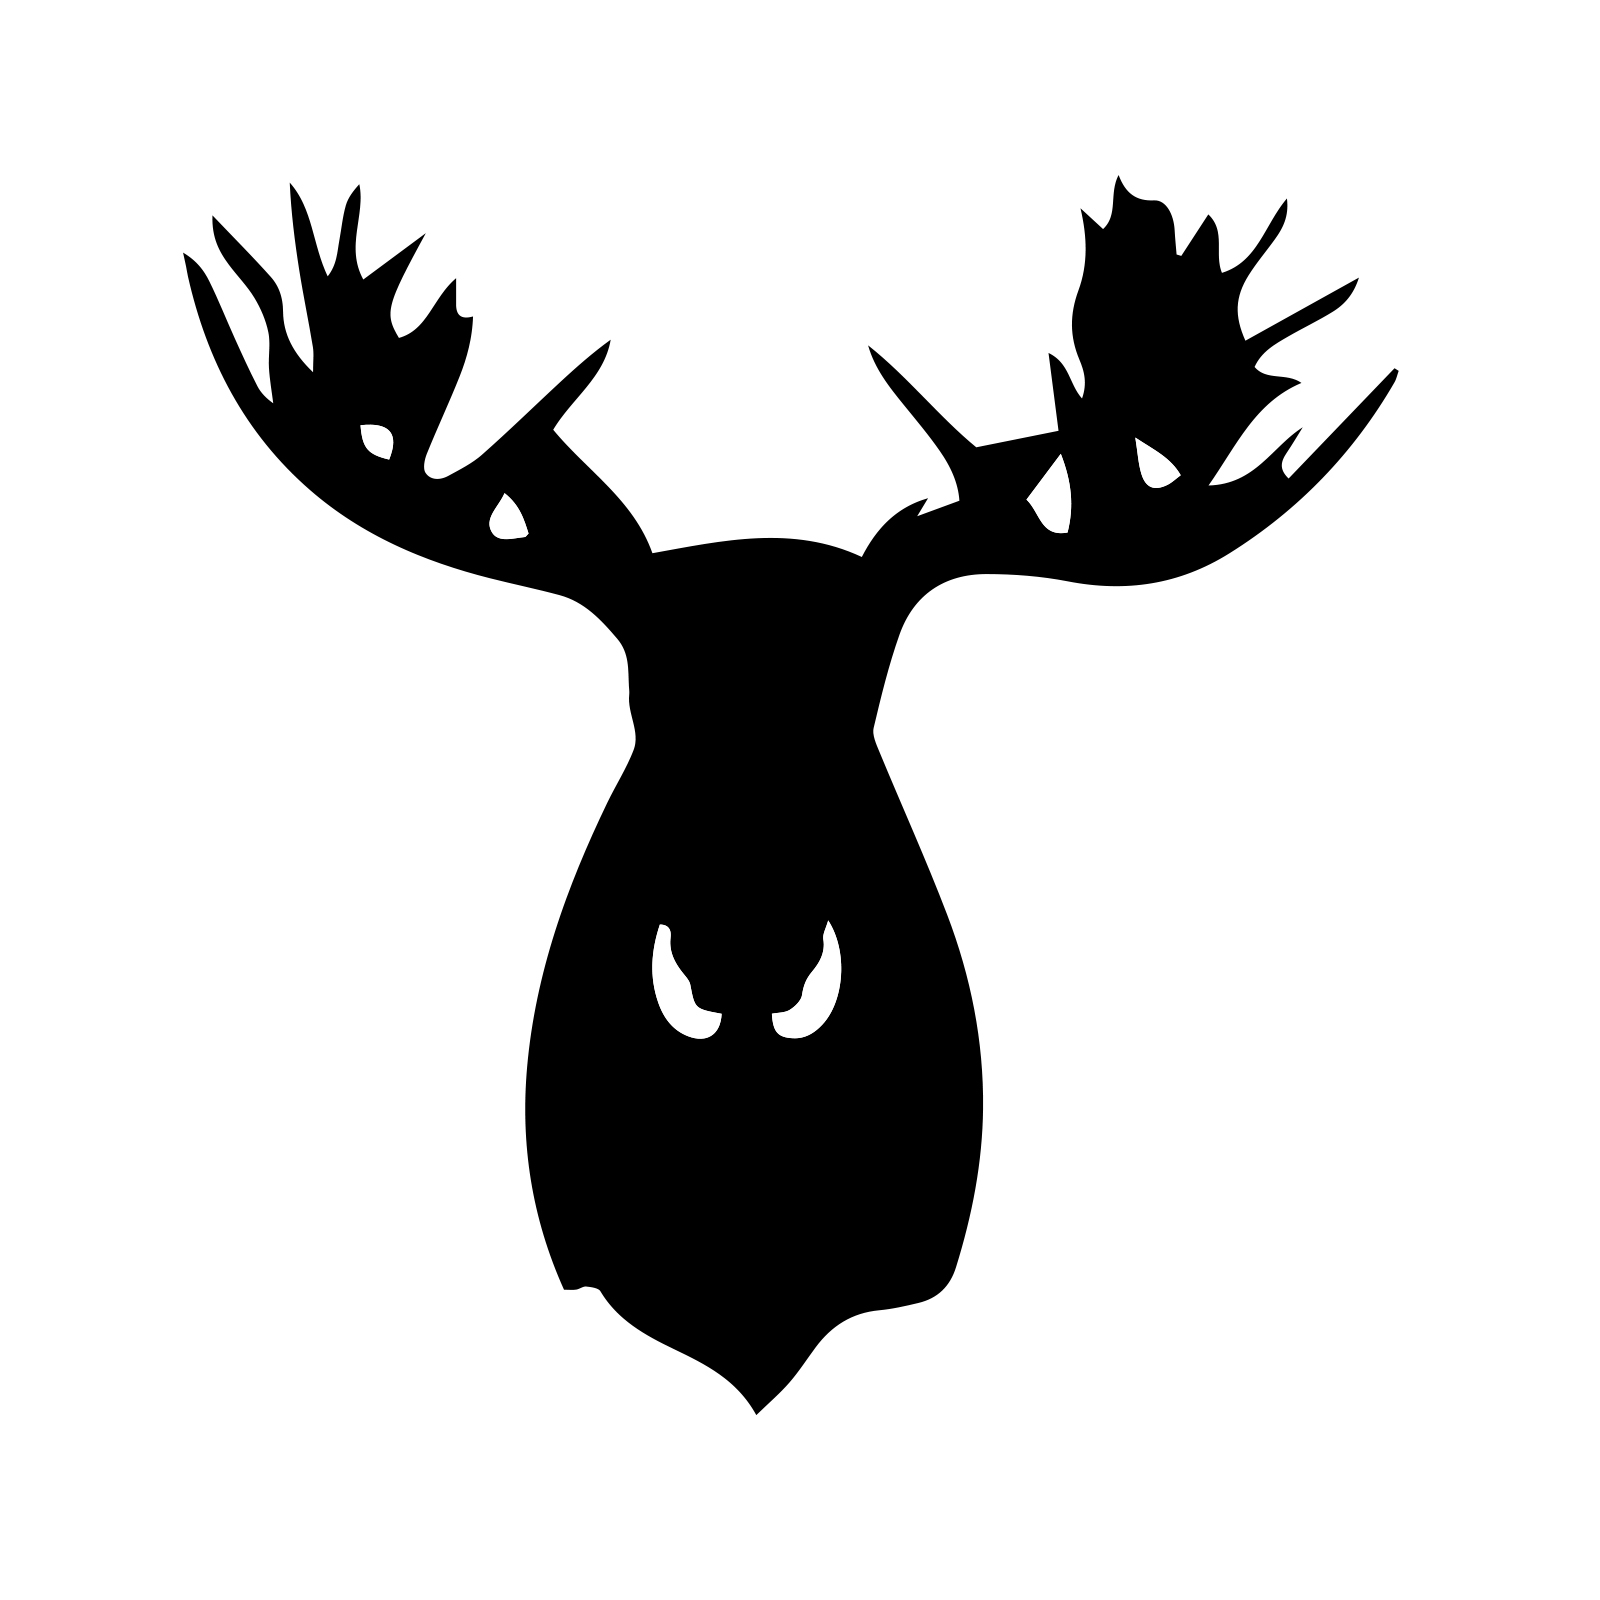 Moose Head Silhouette Snowboard Sticker All Weather Vinyl